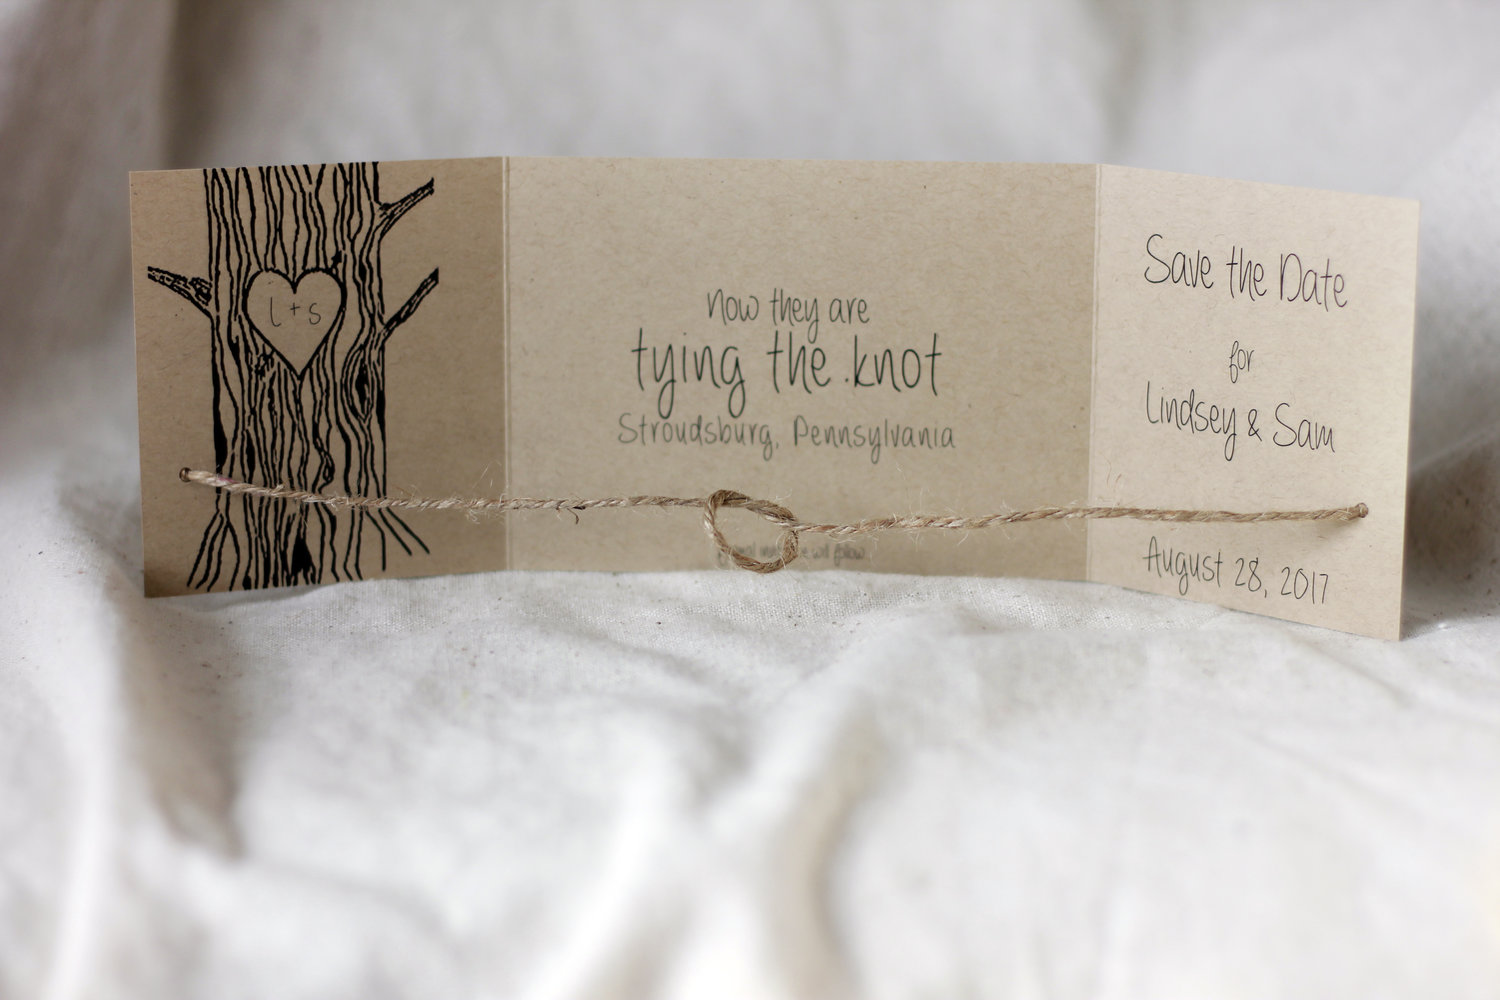 kraft tying the knot set of 110 tie knot rustic wedding kraft tie the knot Eco Friendly Tying the knot save the date kraft save date